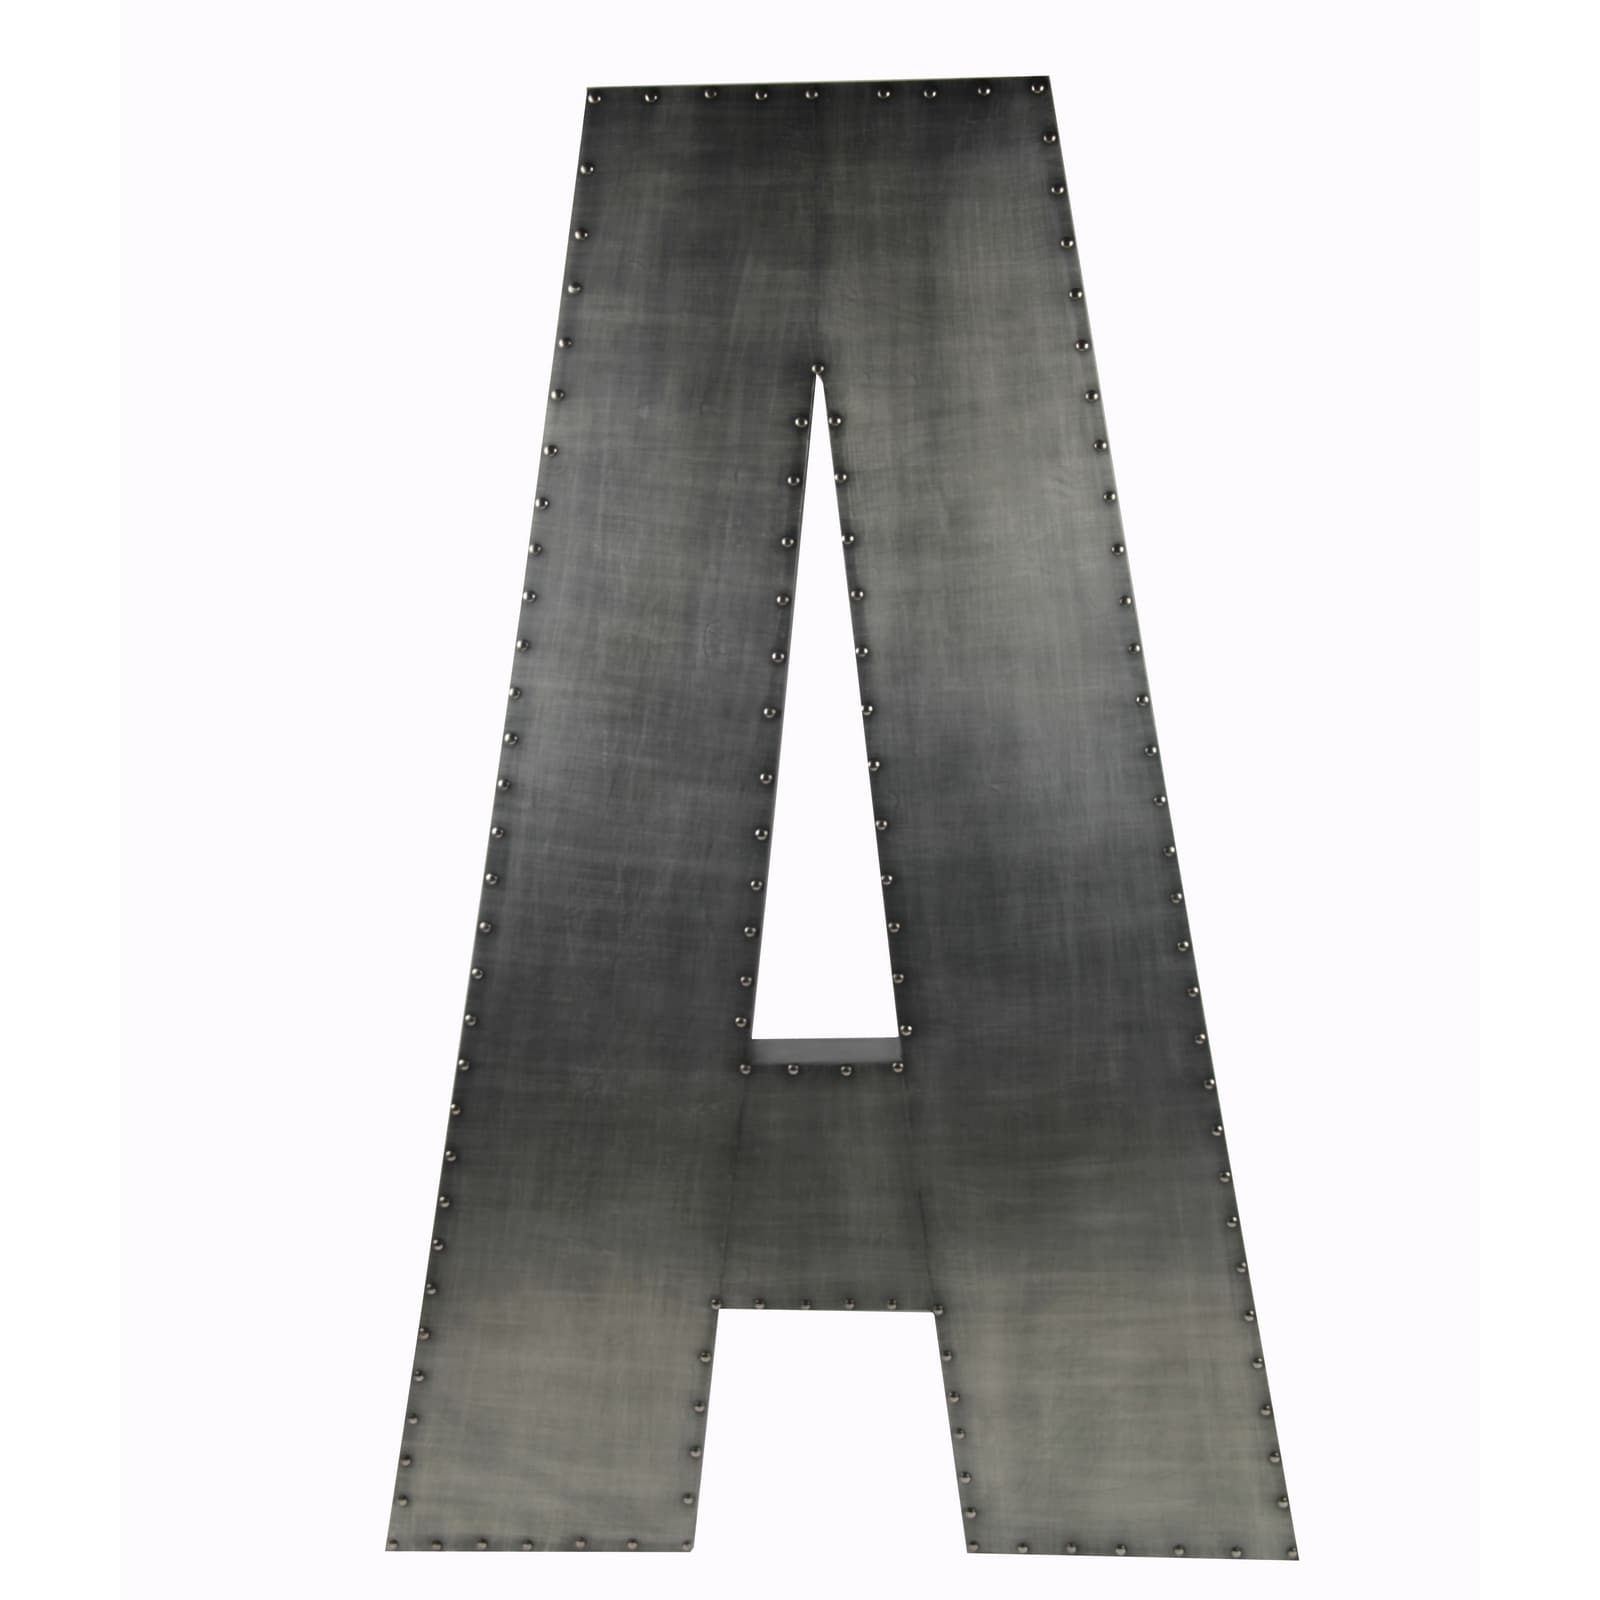 Privilege Large 'A' Aluminum/ Wood Wall Decor at Sears.com